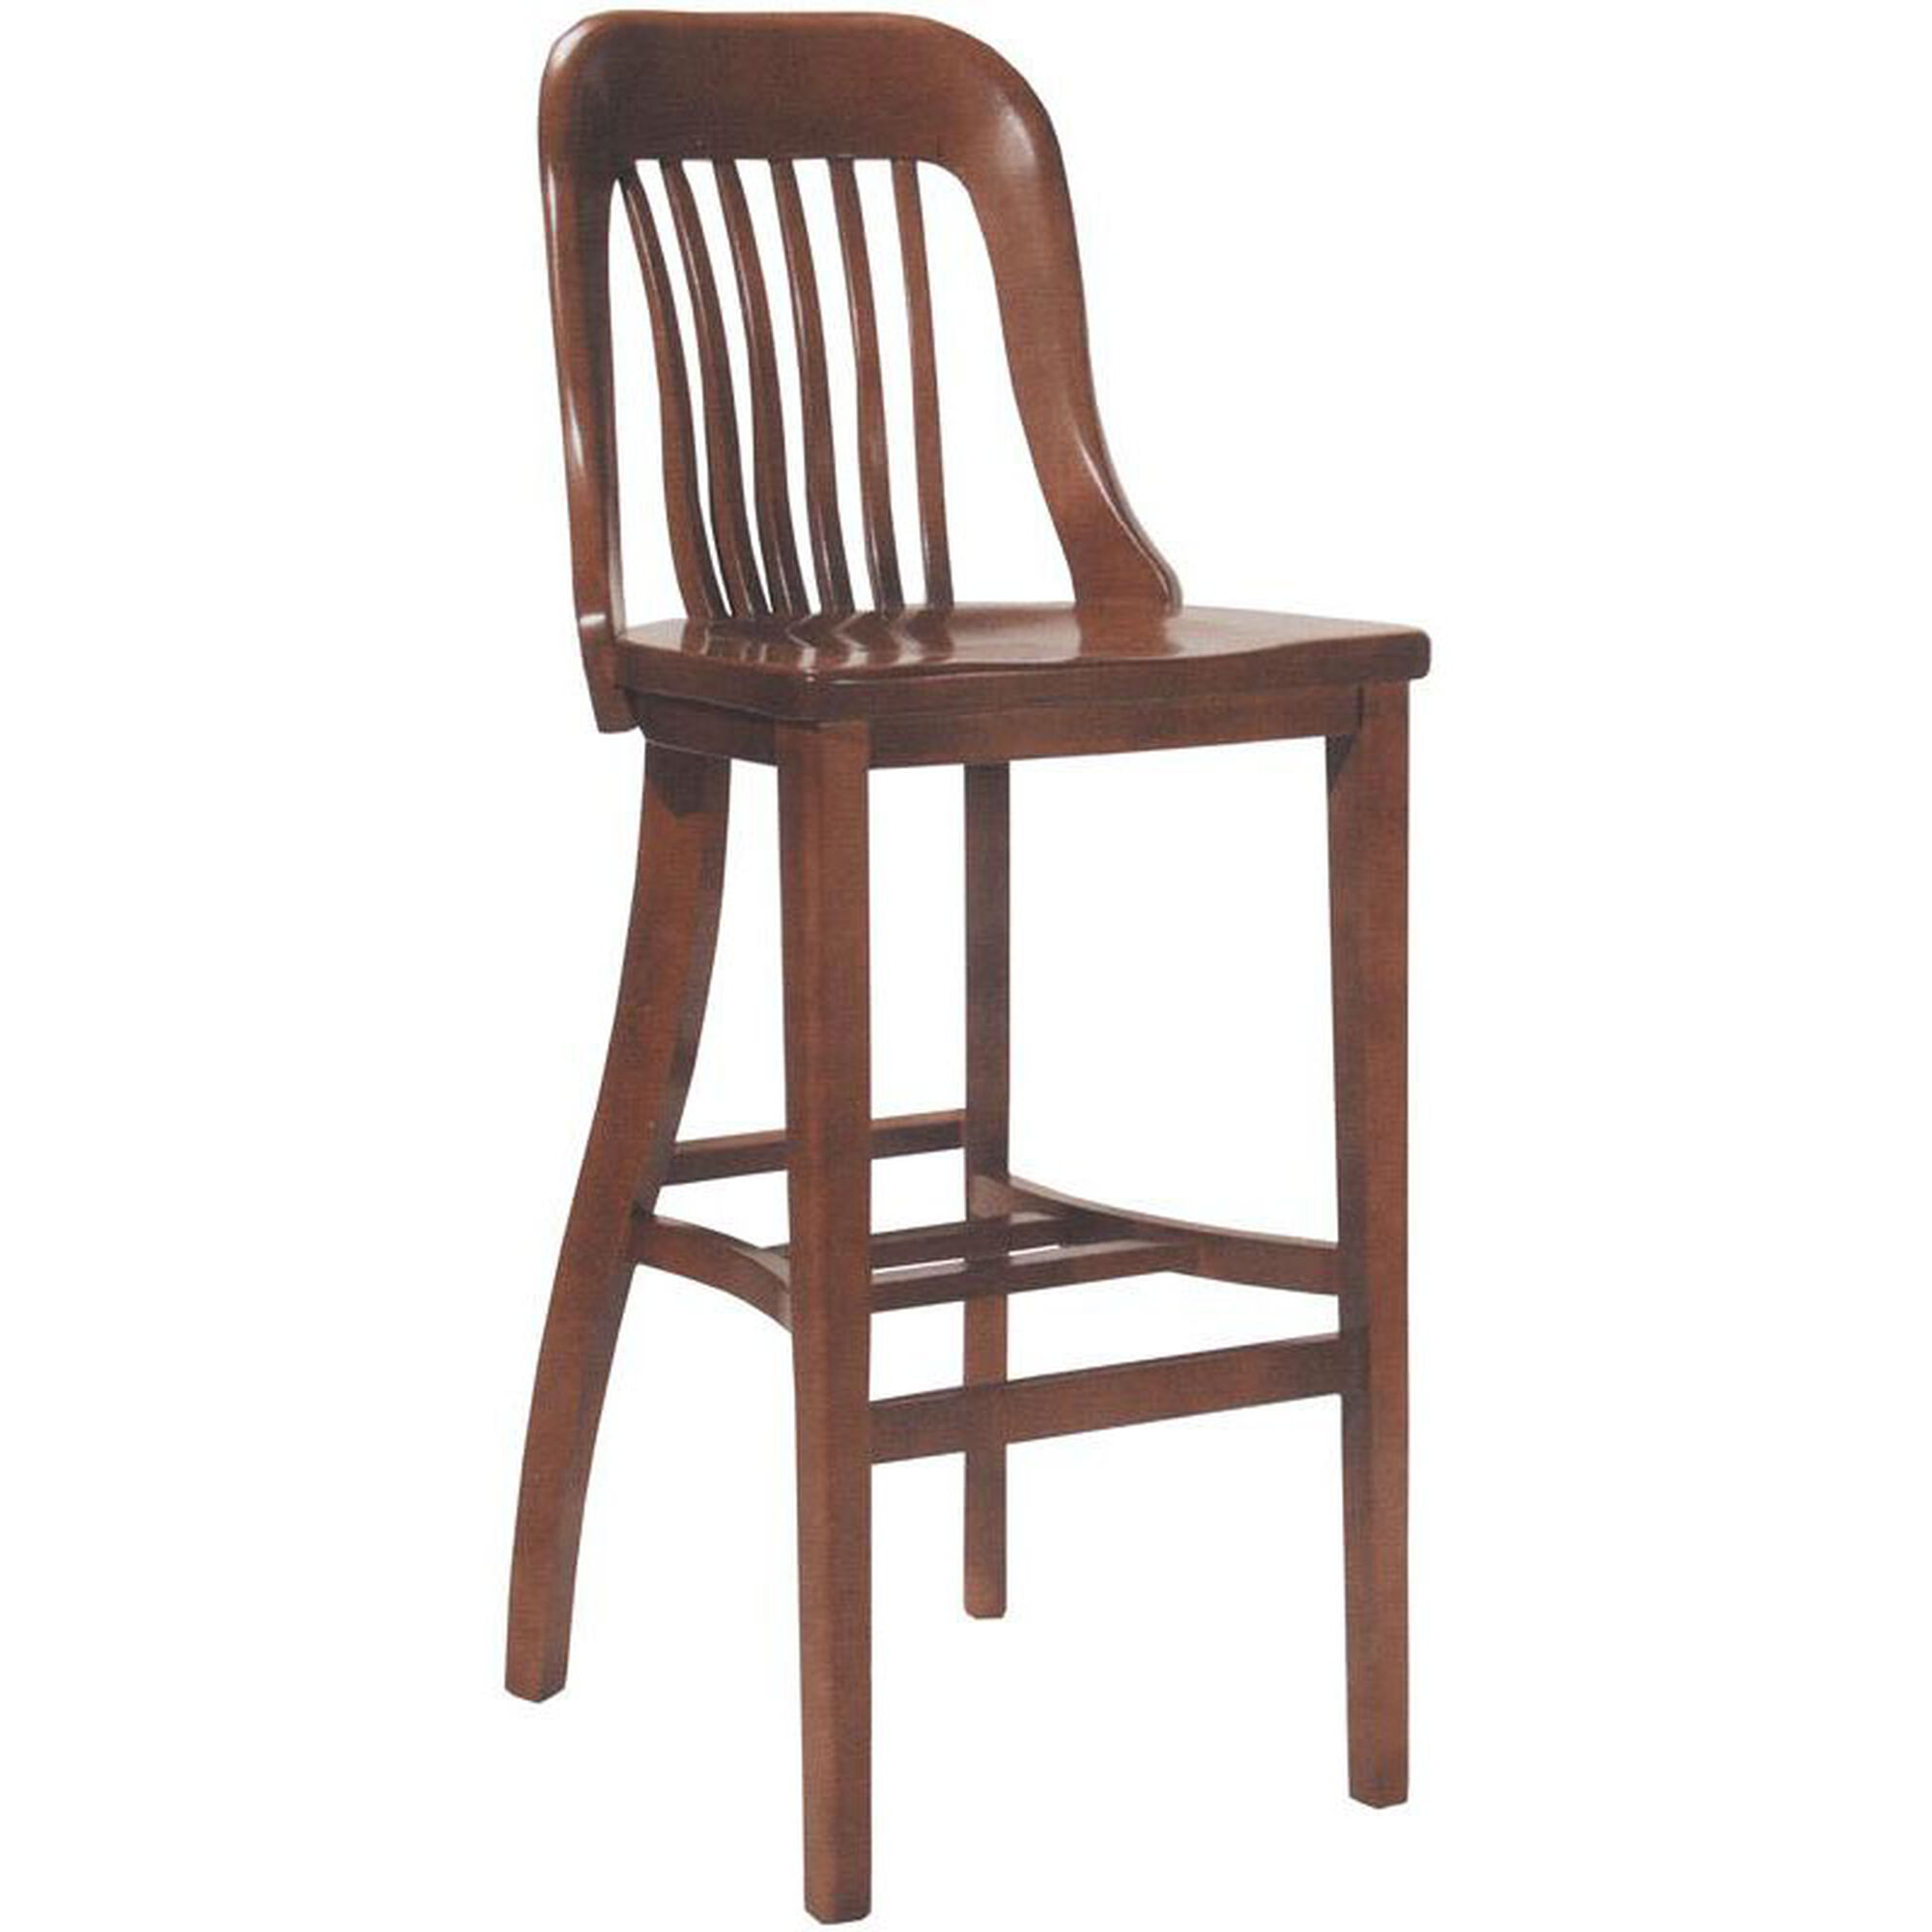 Wood Saddle Seat Barstool 6891 Bizchair Com